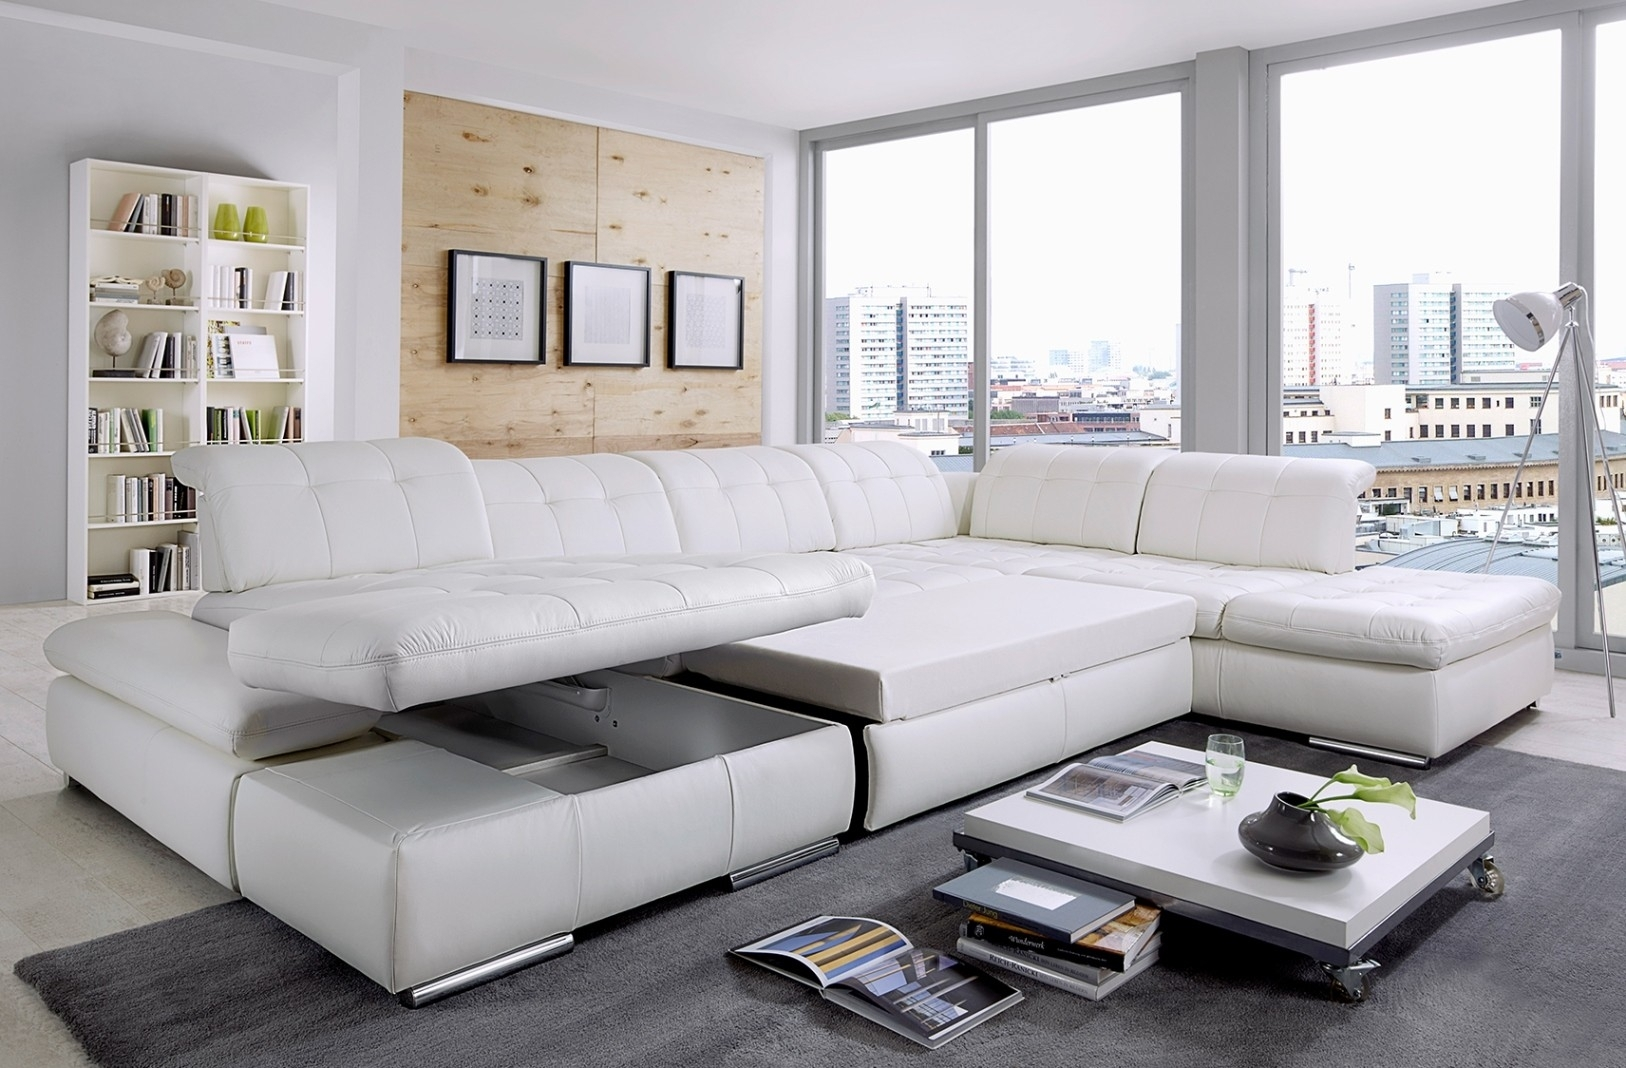 Best Modern Contemporary Furniture Stores Orlando Miami Florida Fl Throughout Nh Sectional Sofas (Image 2 of 10)